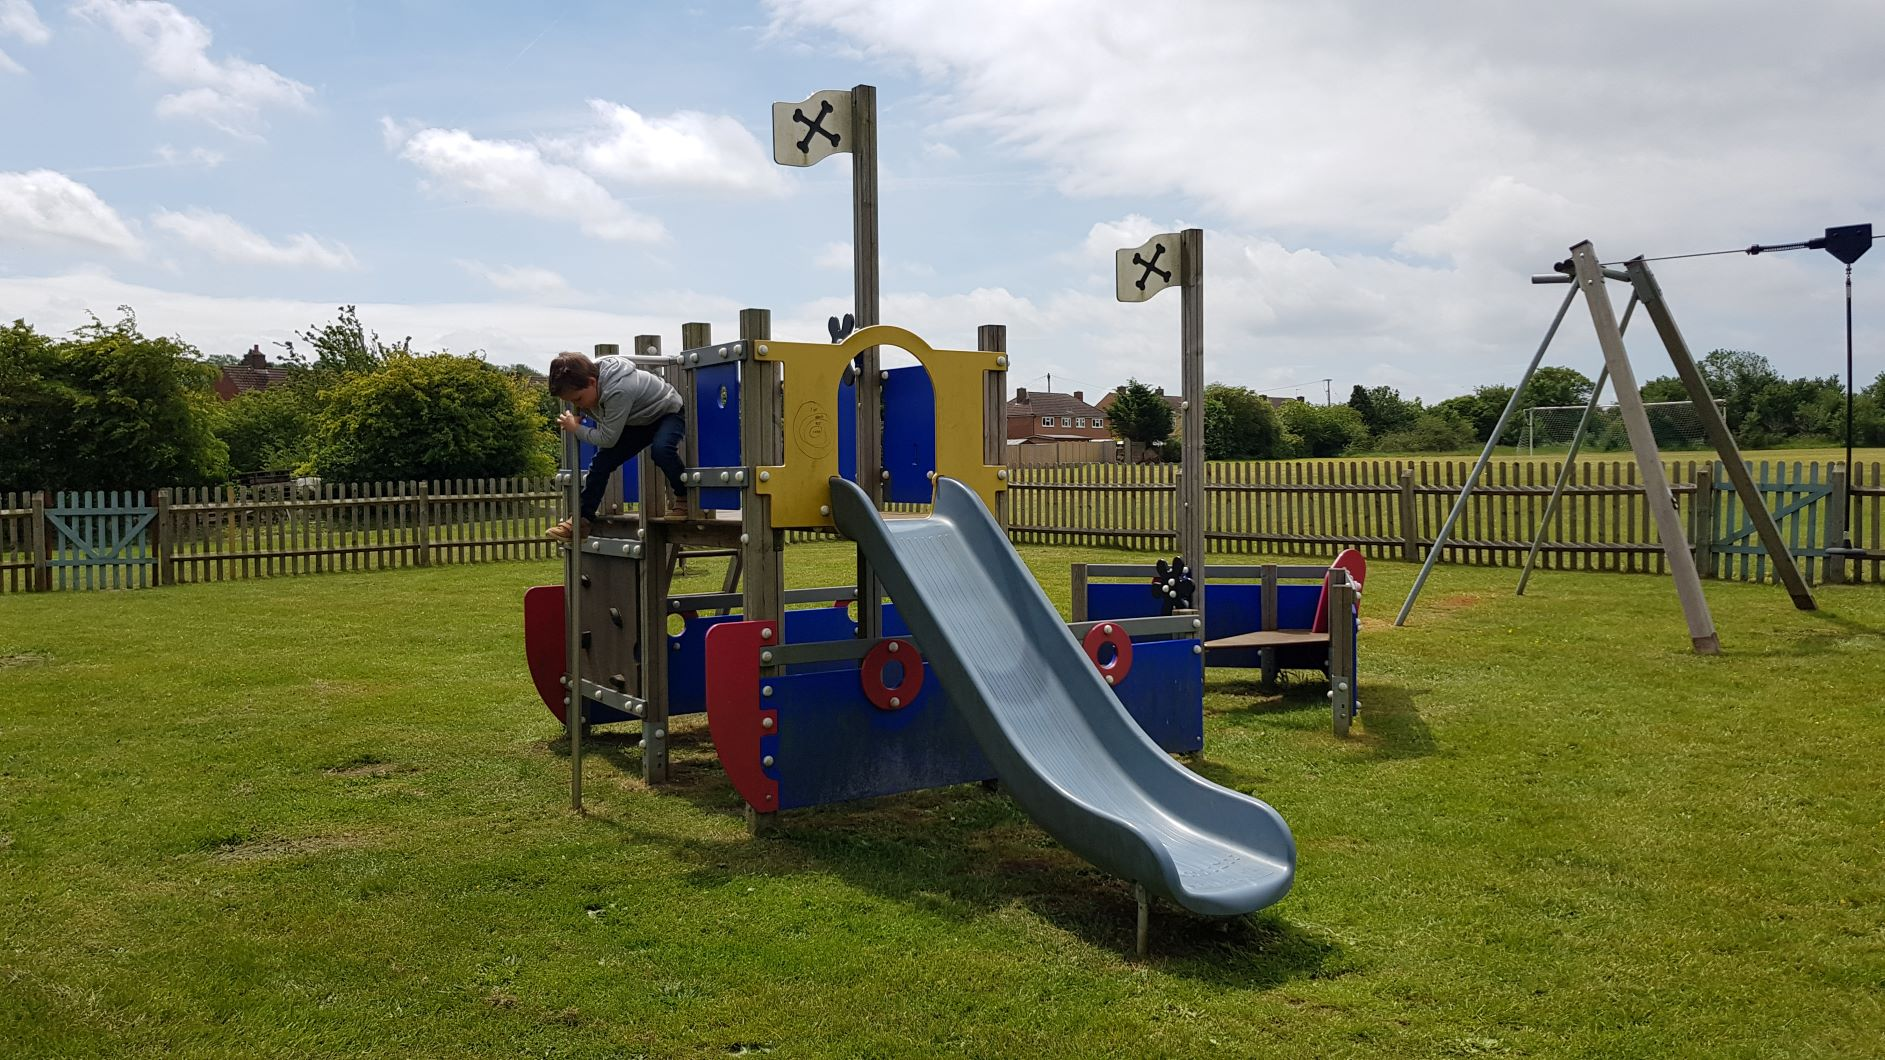 Forest hill village play park